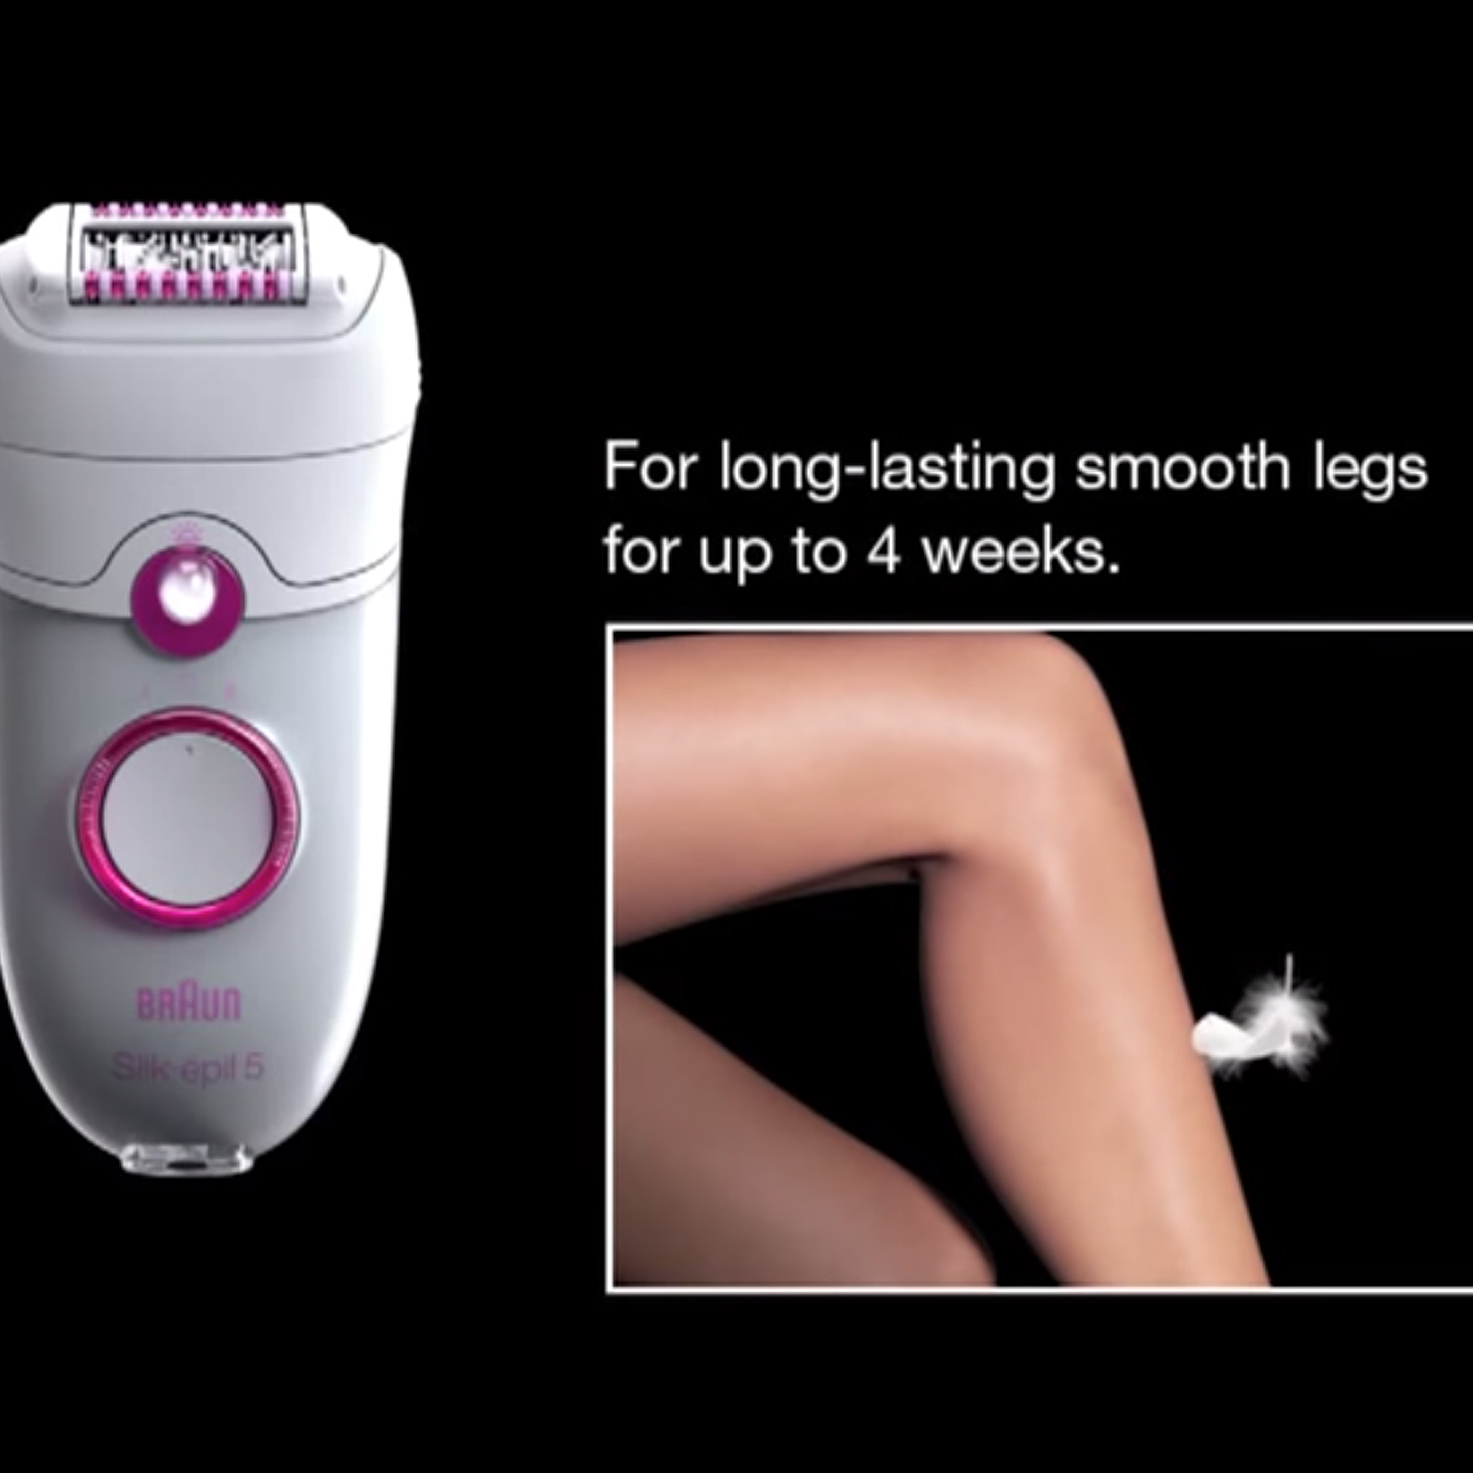 Braun-Silk-epil-5-Epilator-Product-demo-video